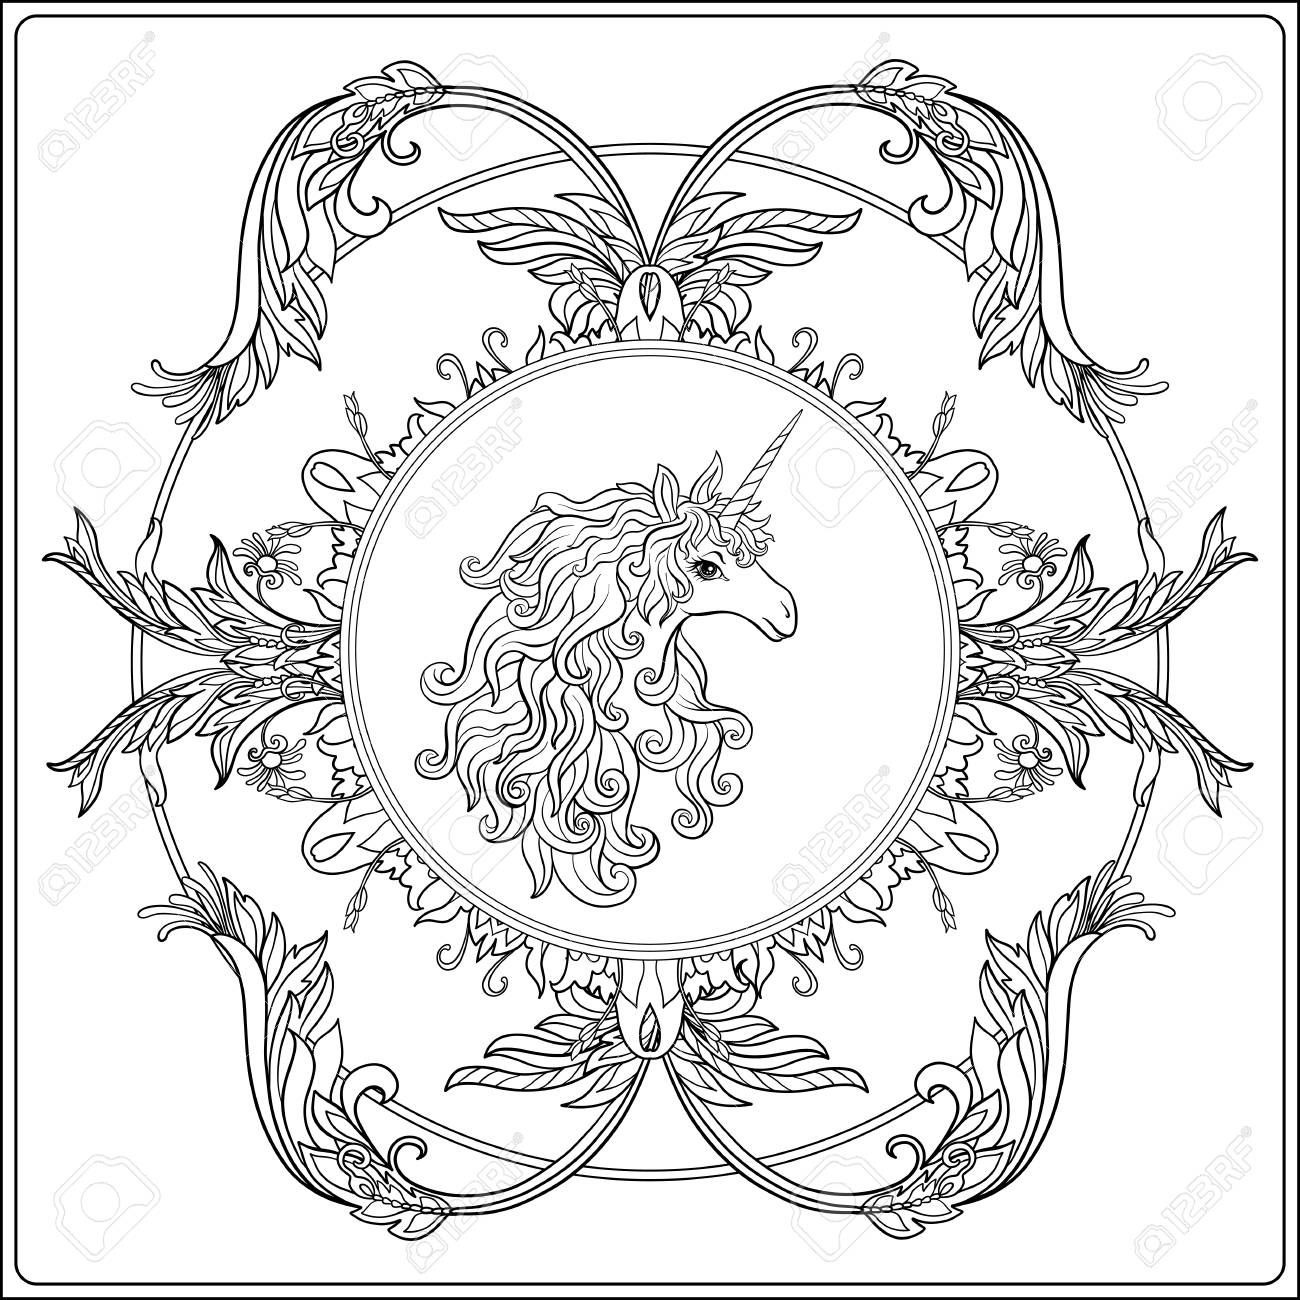 1300x1300 Unicorn In The Frame, Arabesque In The Royal, Medieval Style